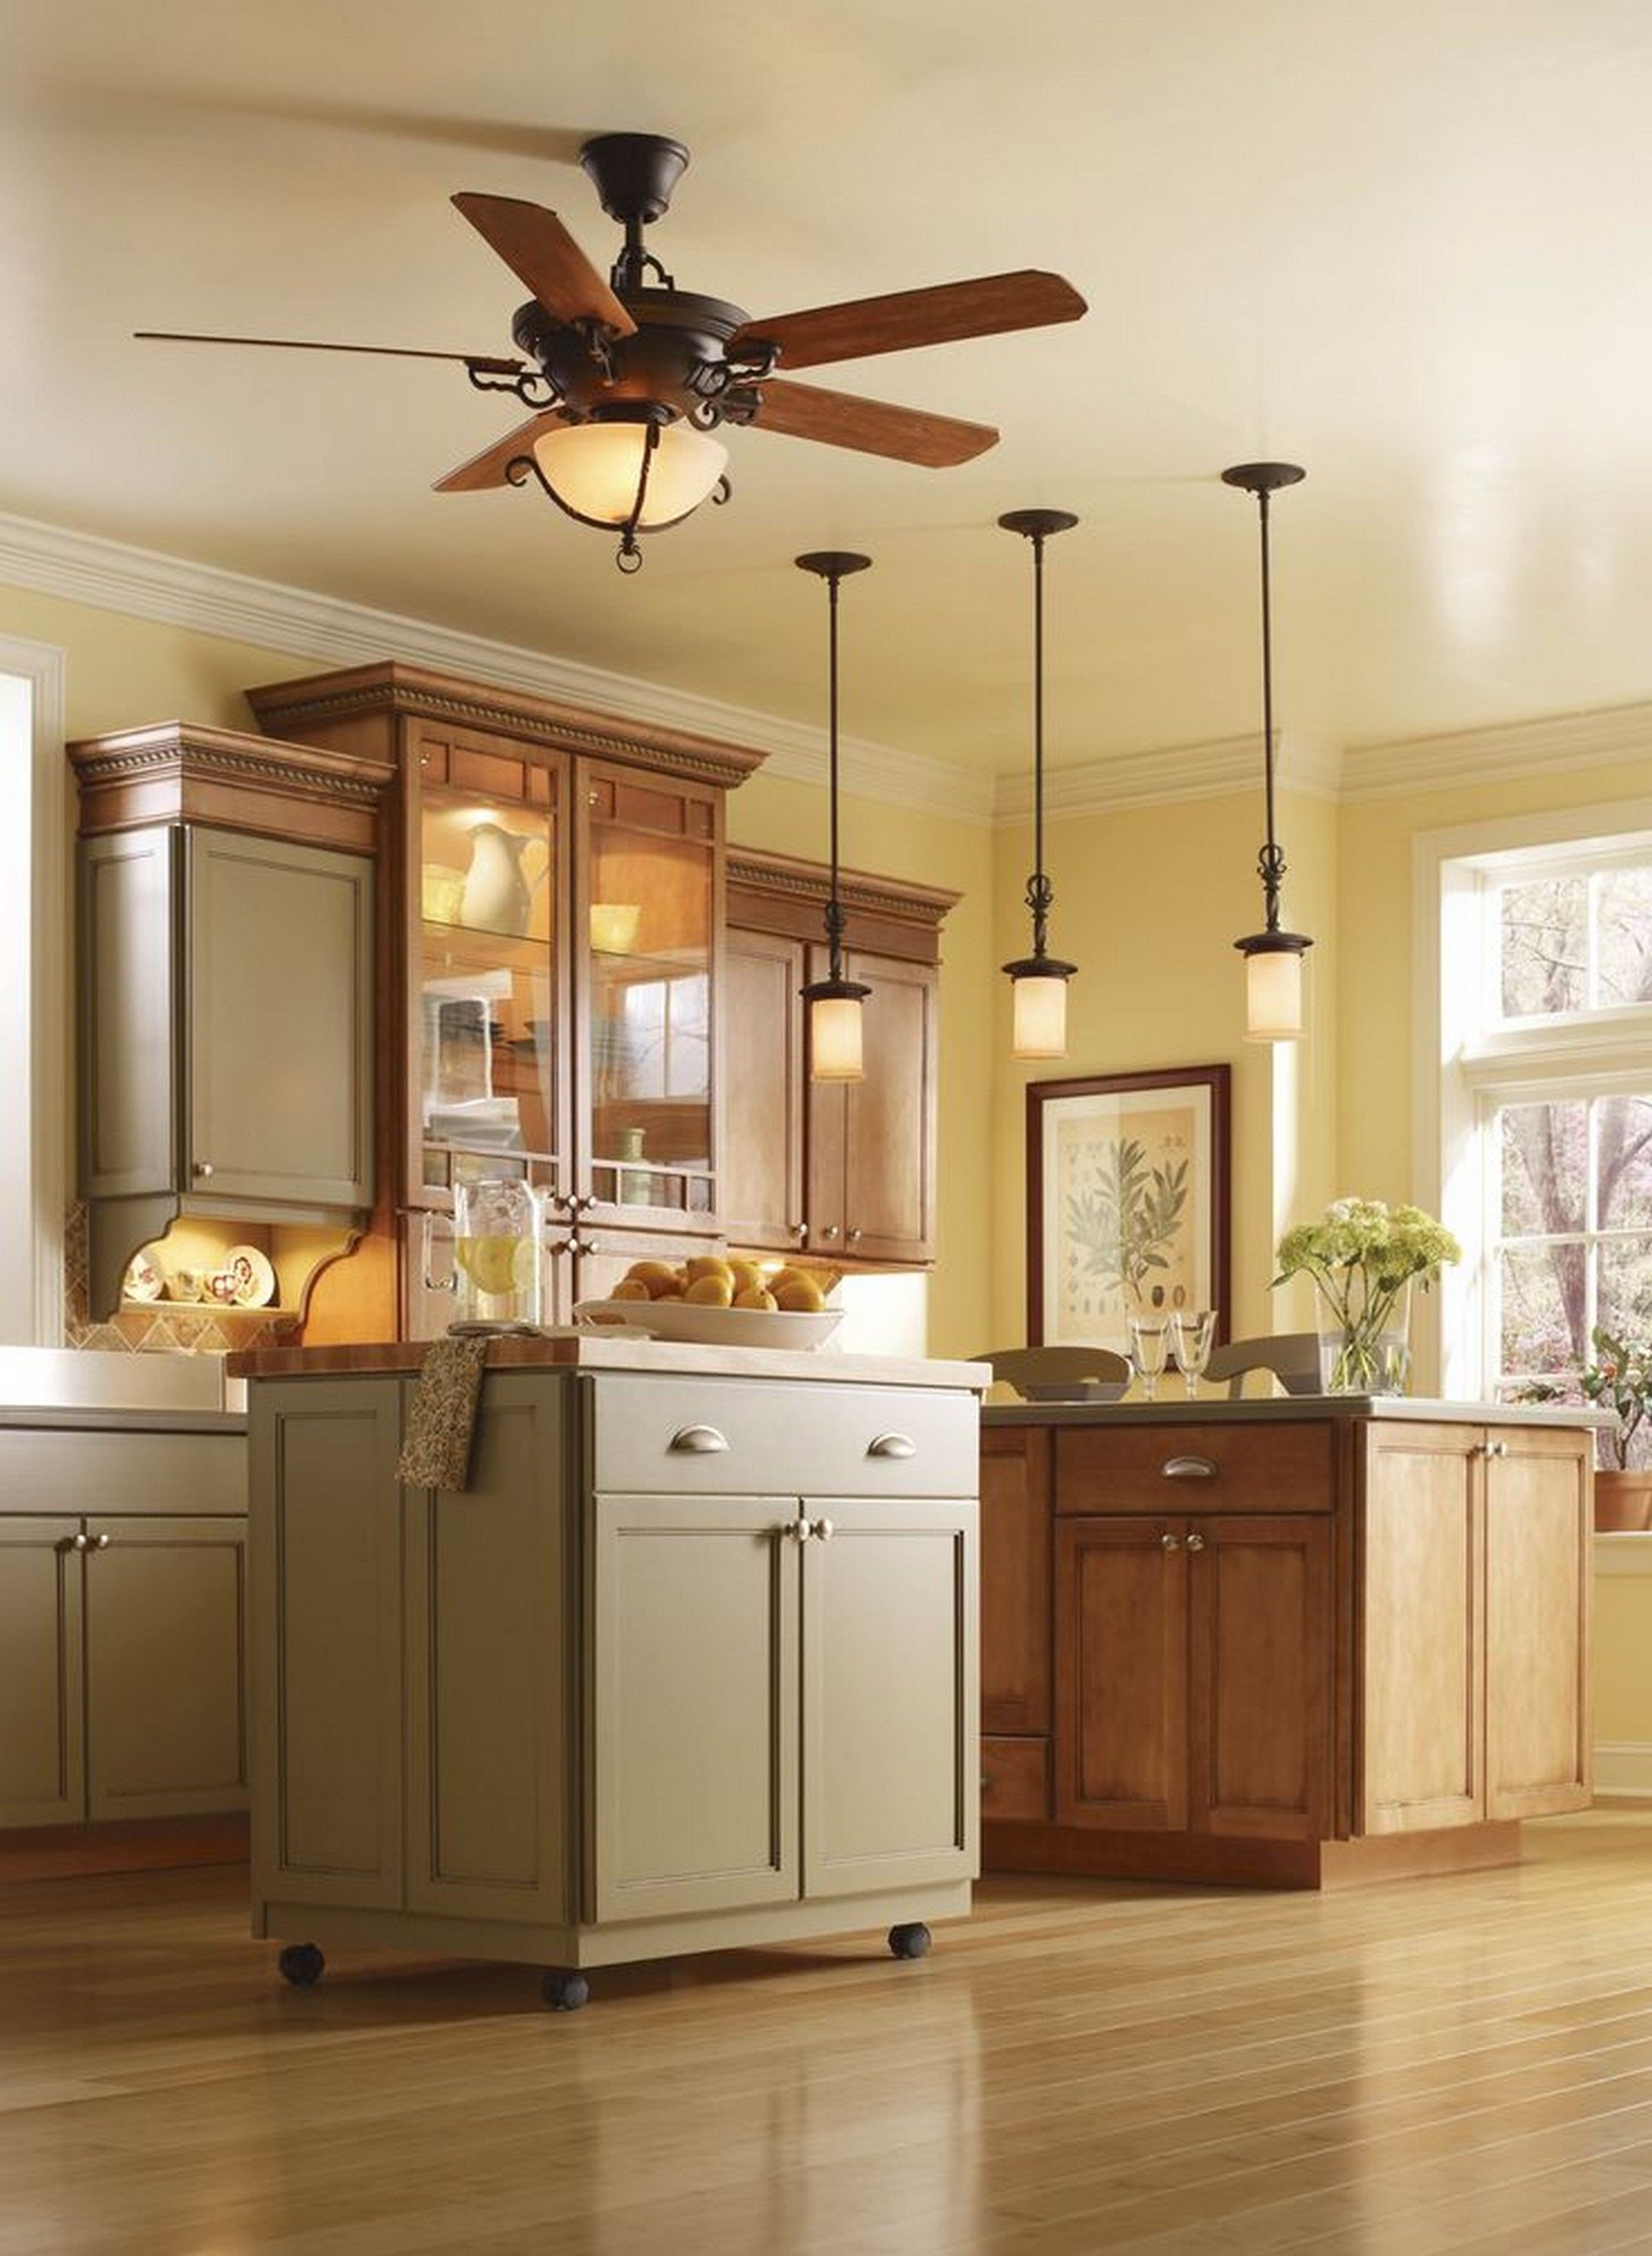 Kitchen Ceiling Fans Lights